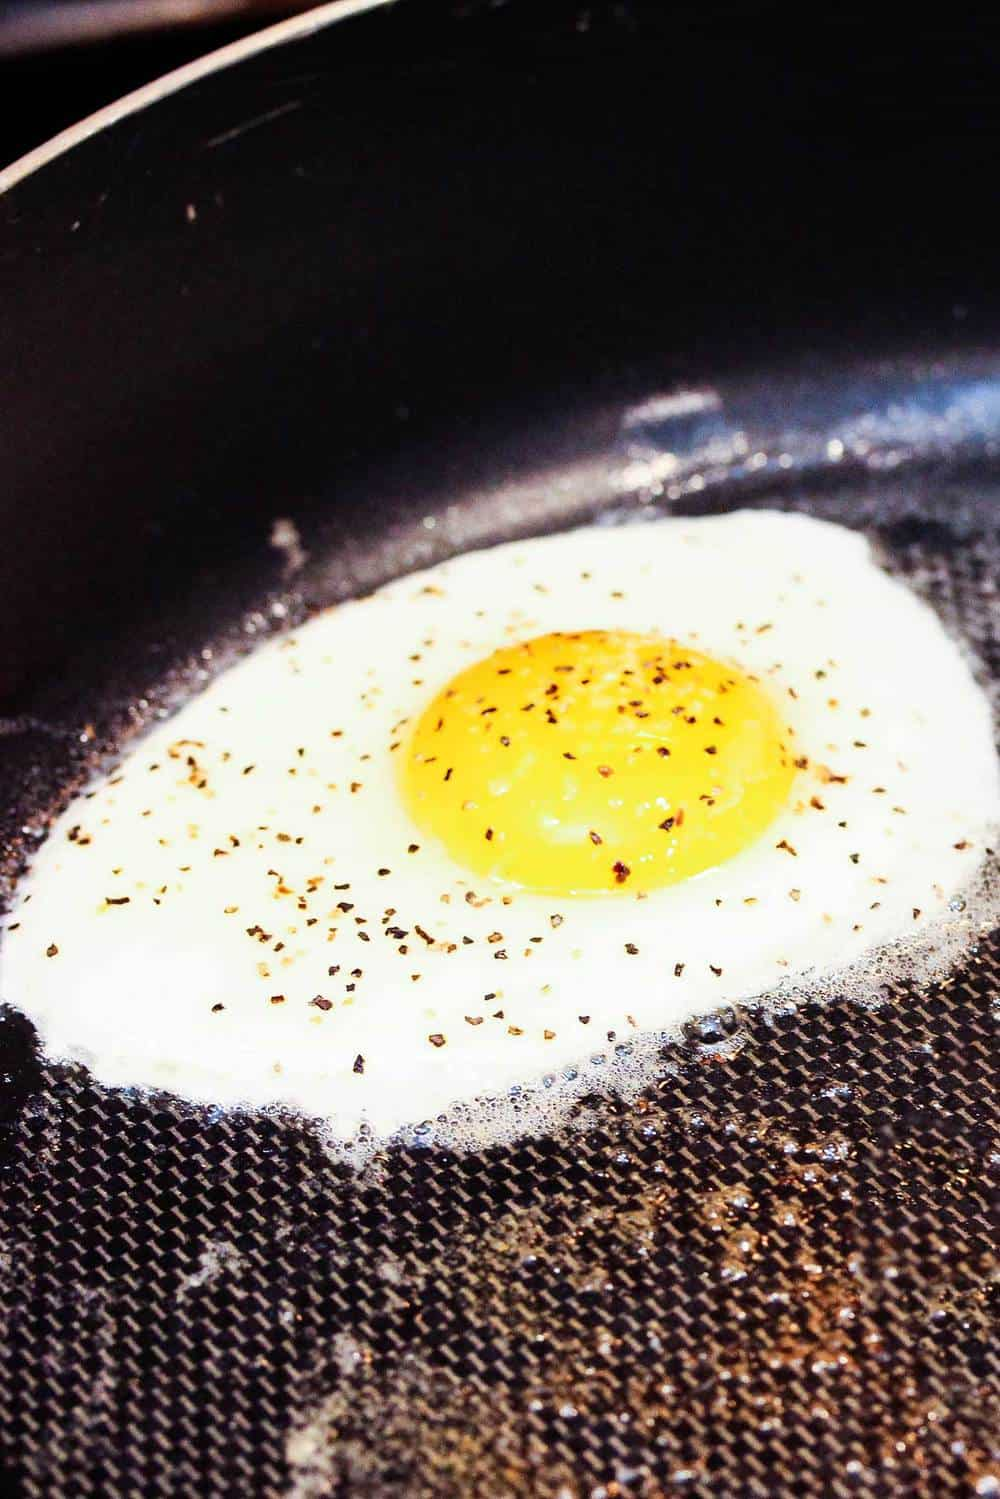 A sunny side up egg in a skillet for a Croque Madame